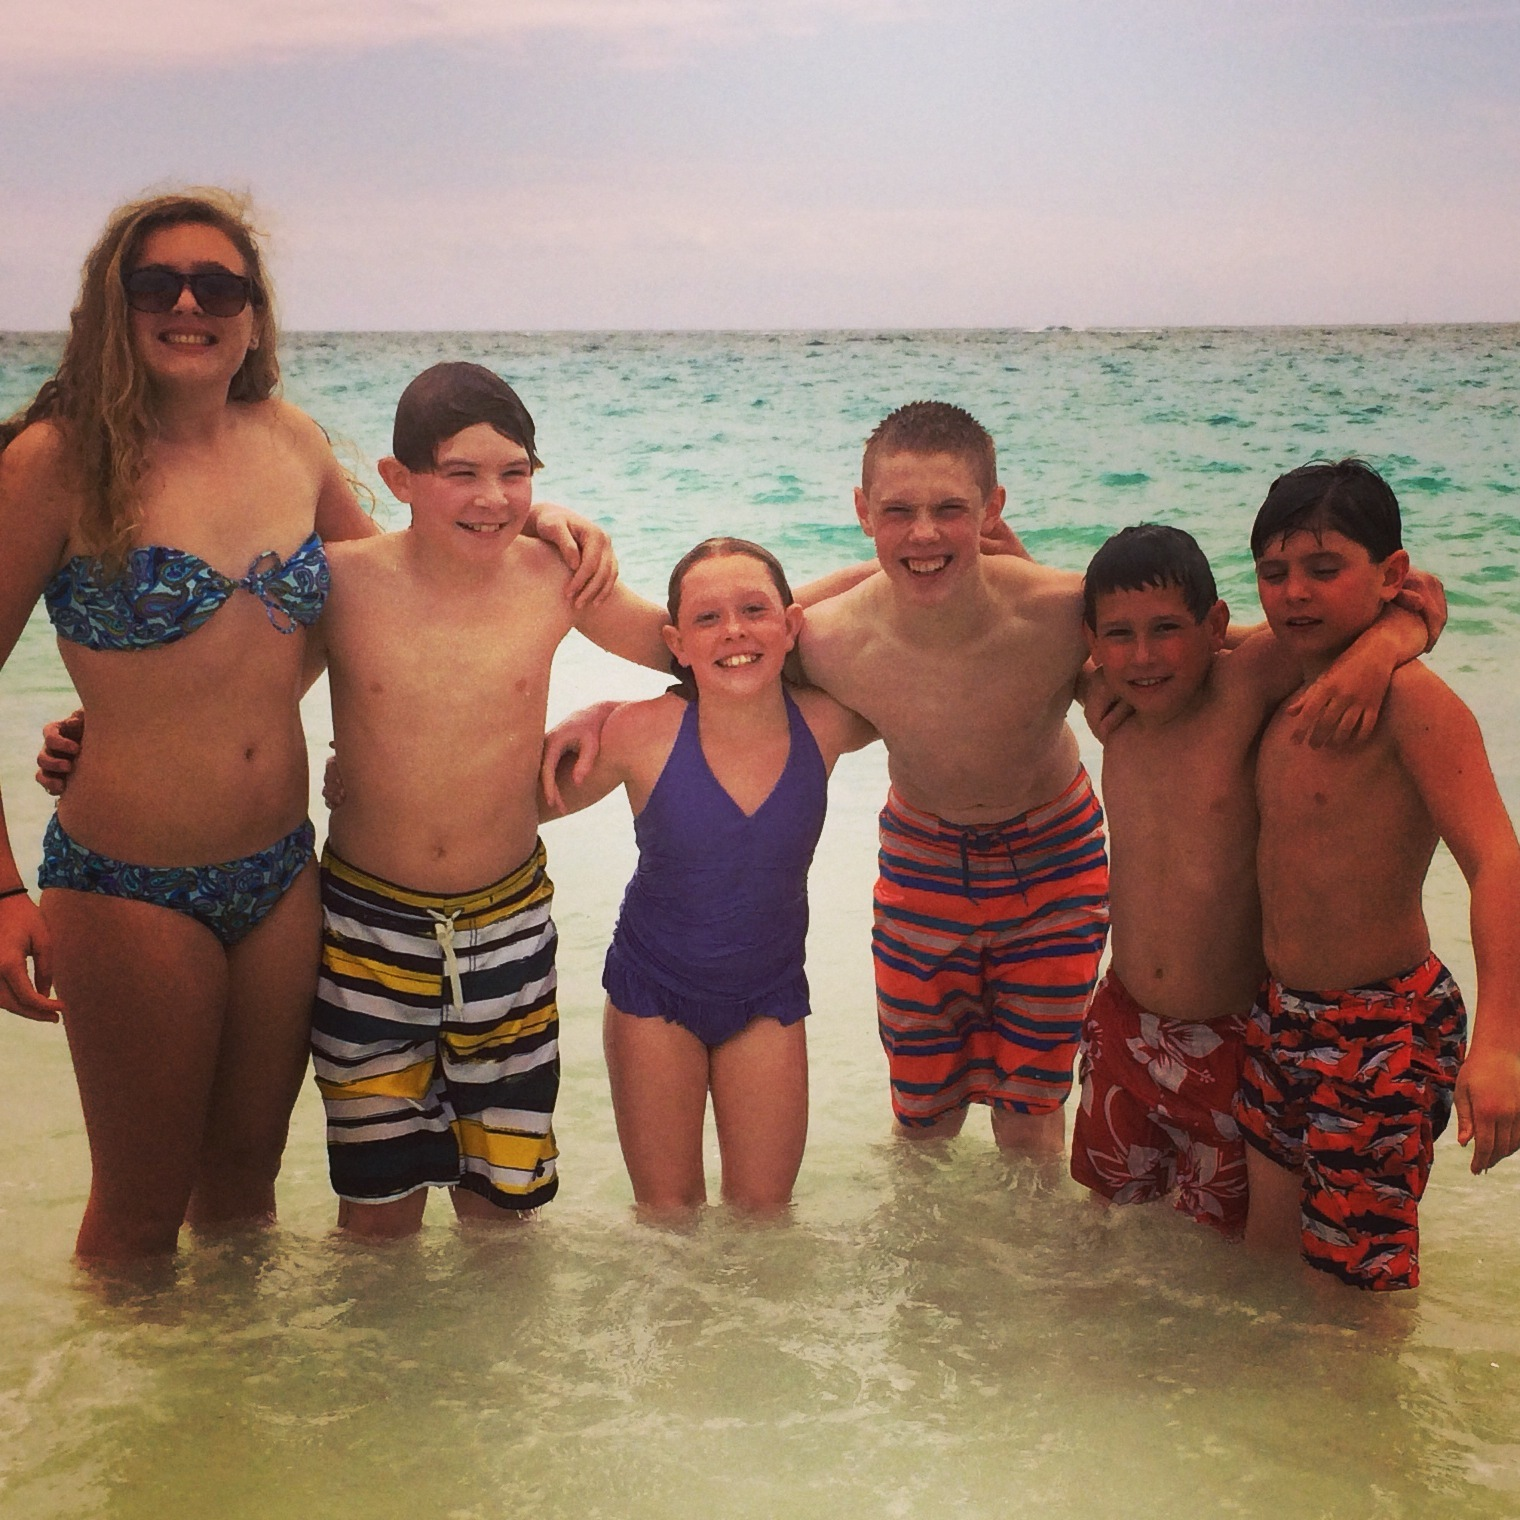 Bermuda with the cousins